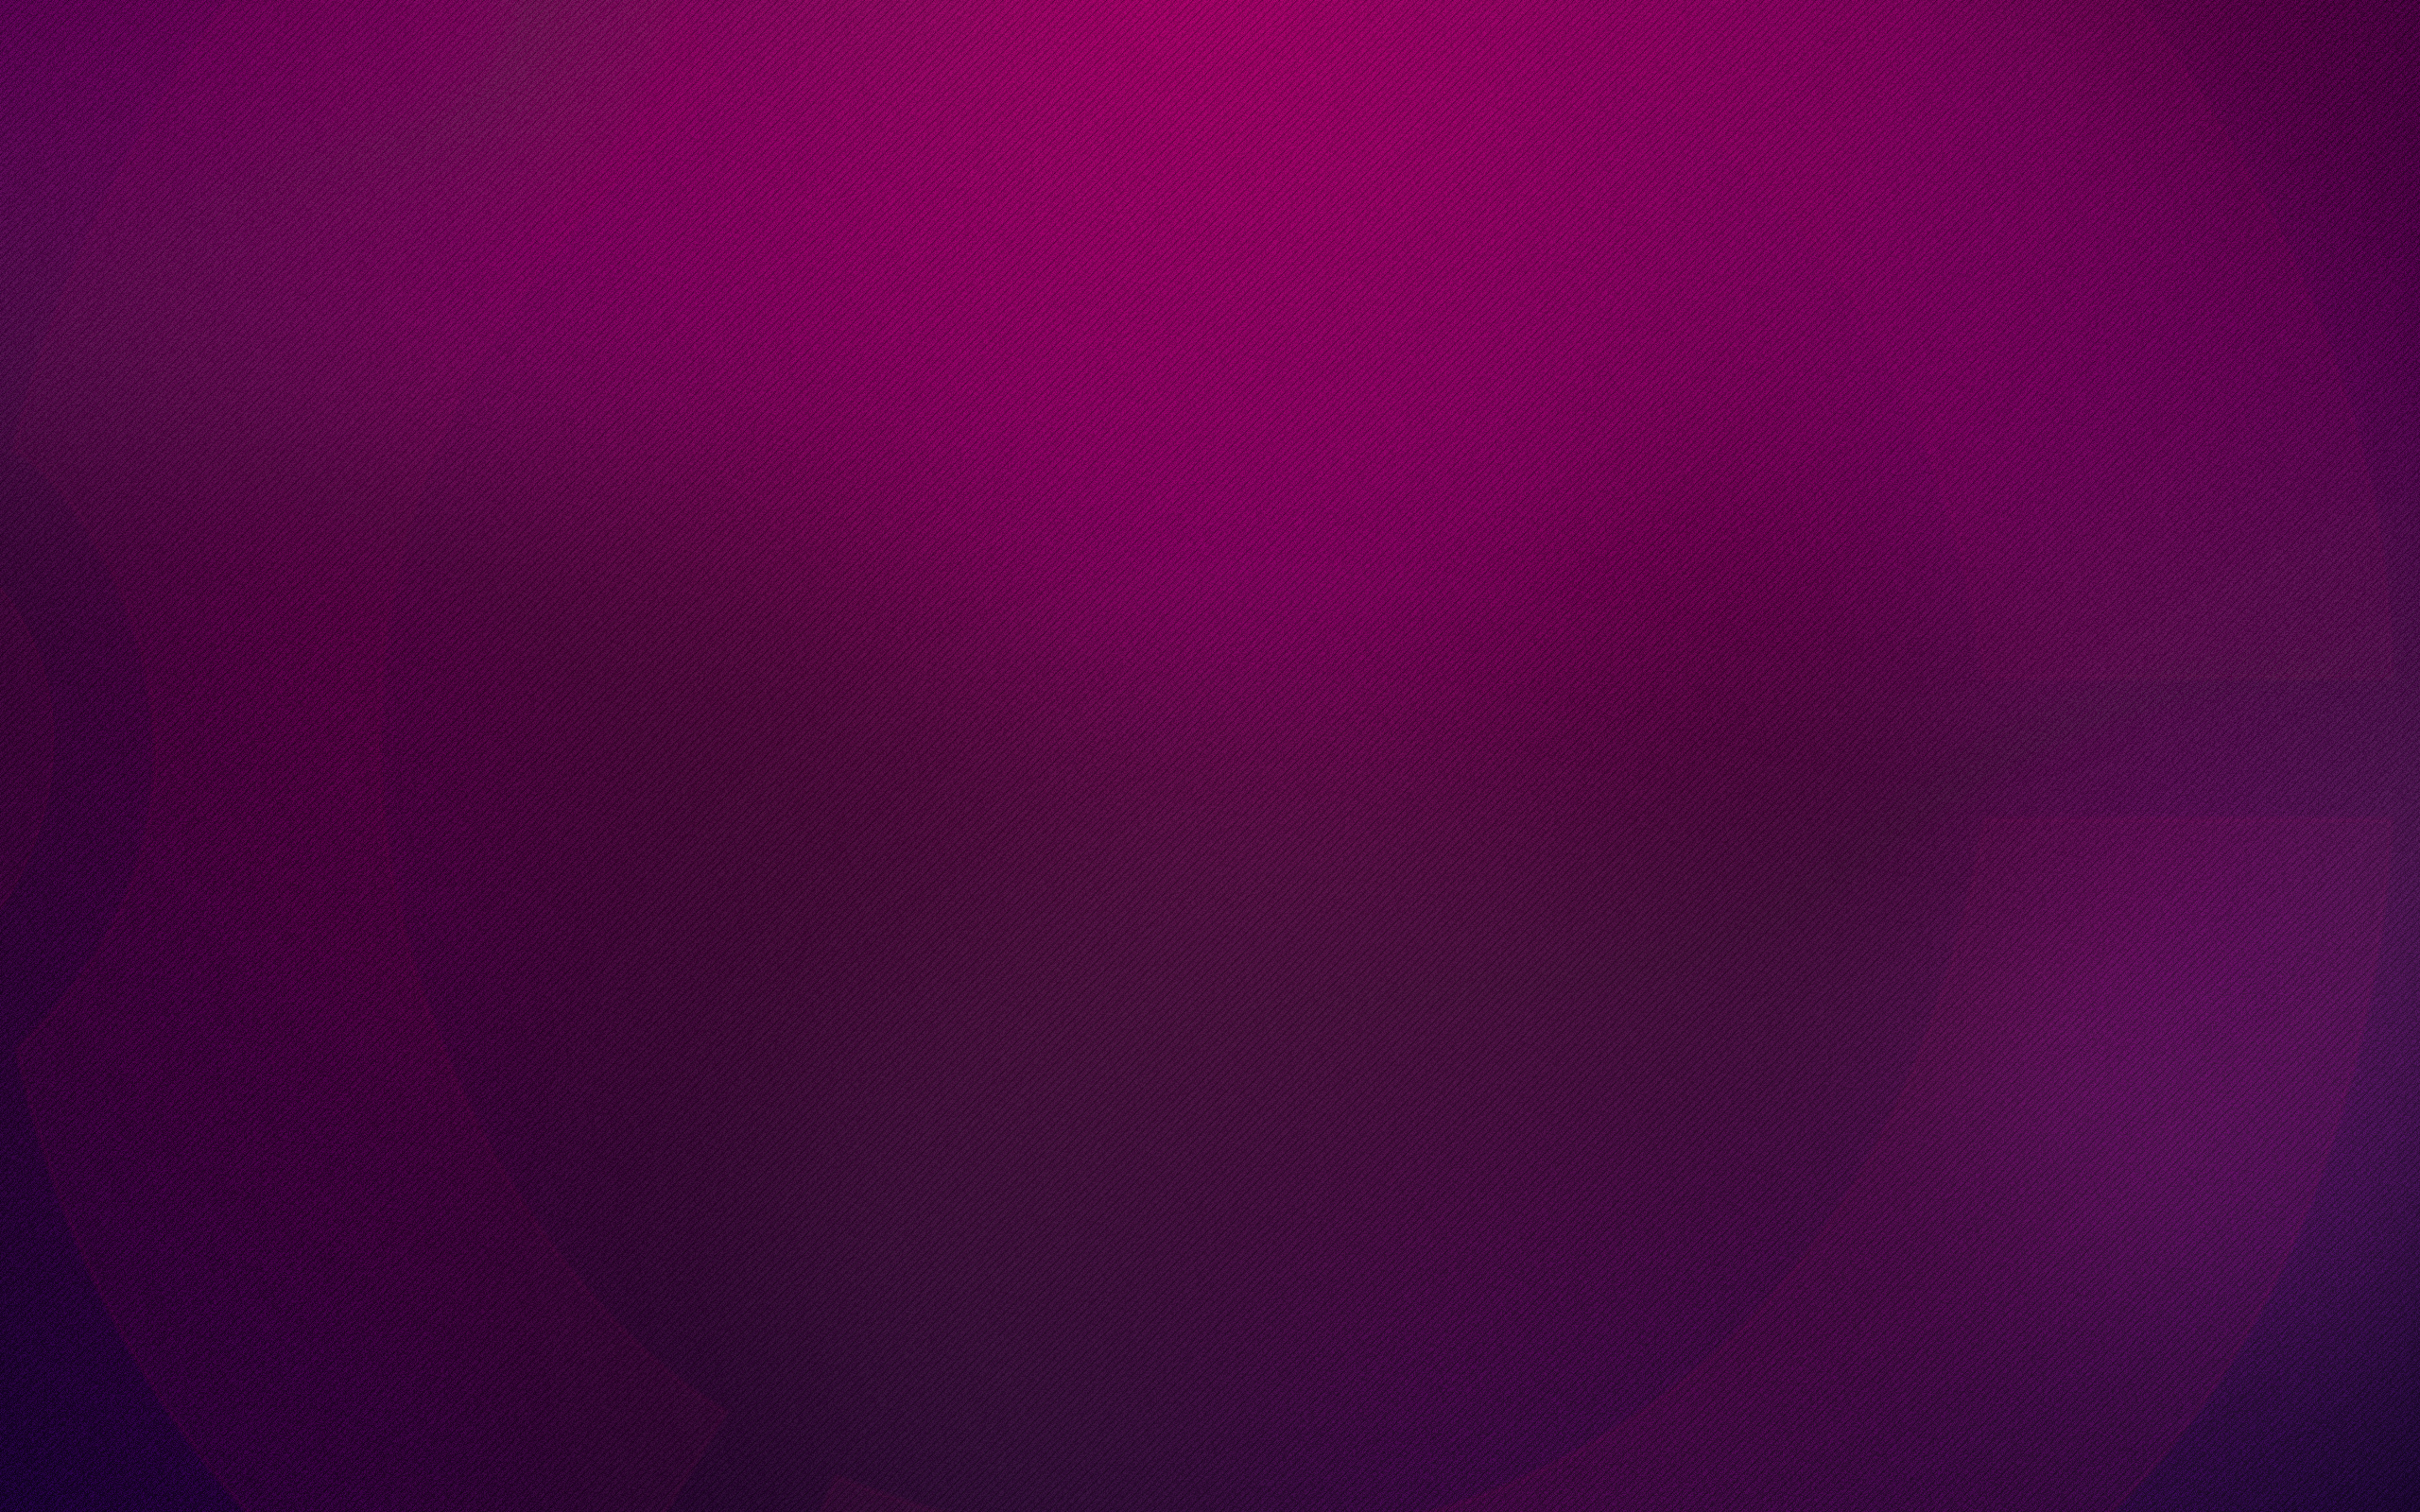 Bright plain purple background